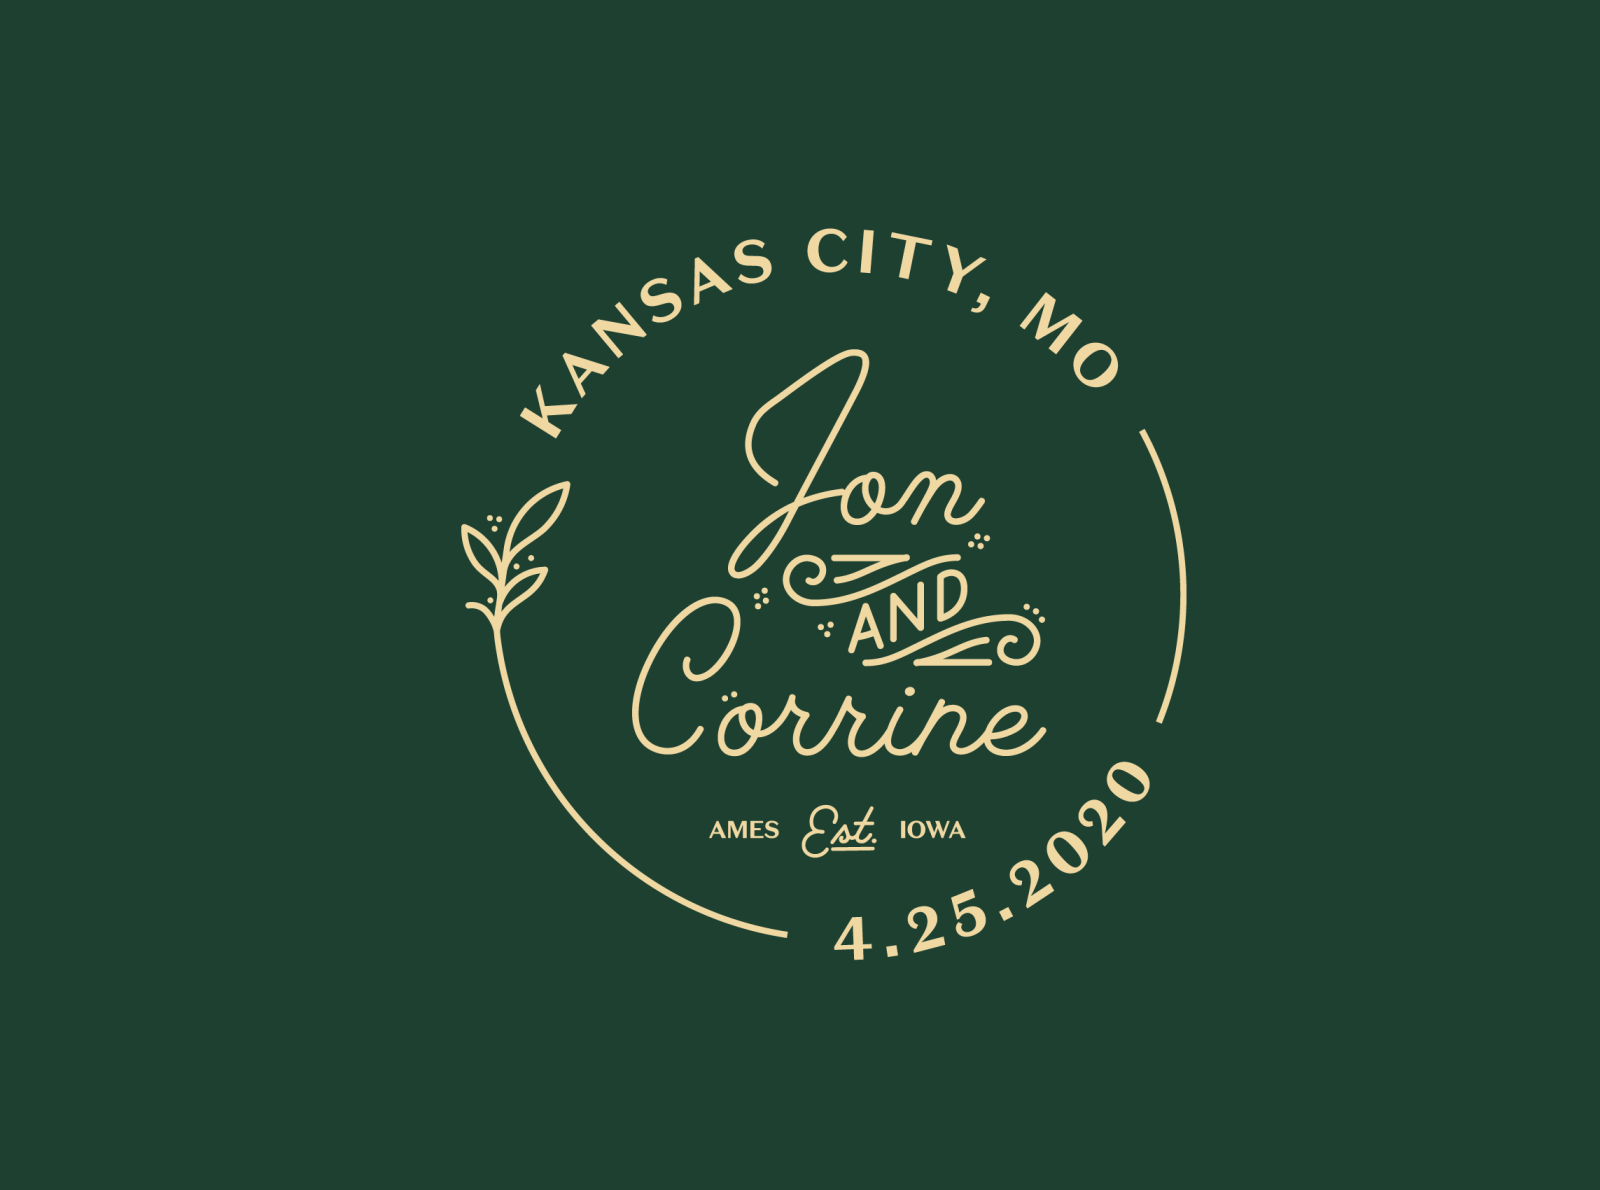 Jon & Corrine Wedding Badge